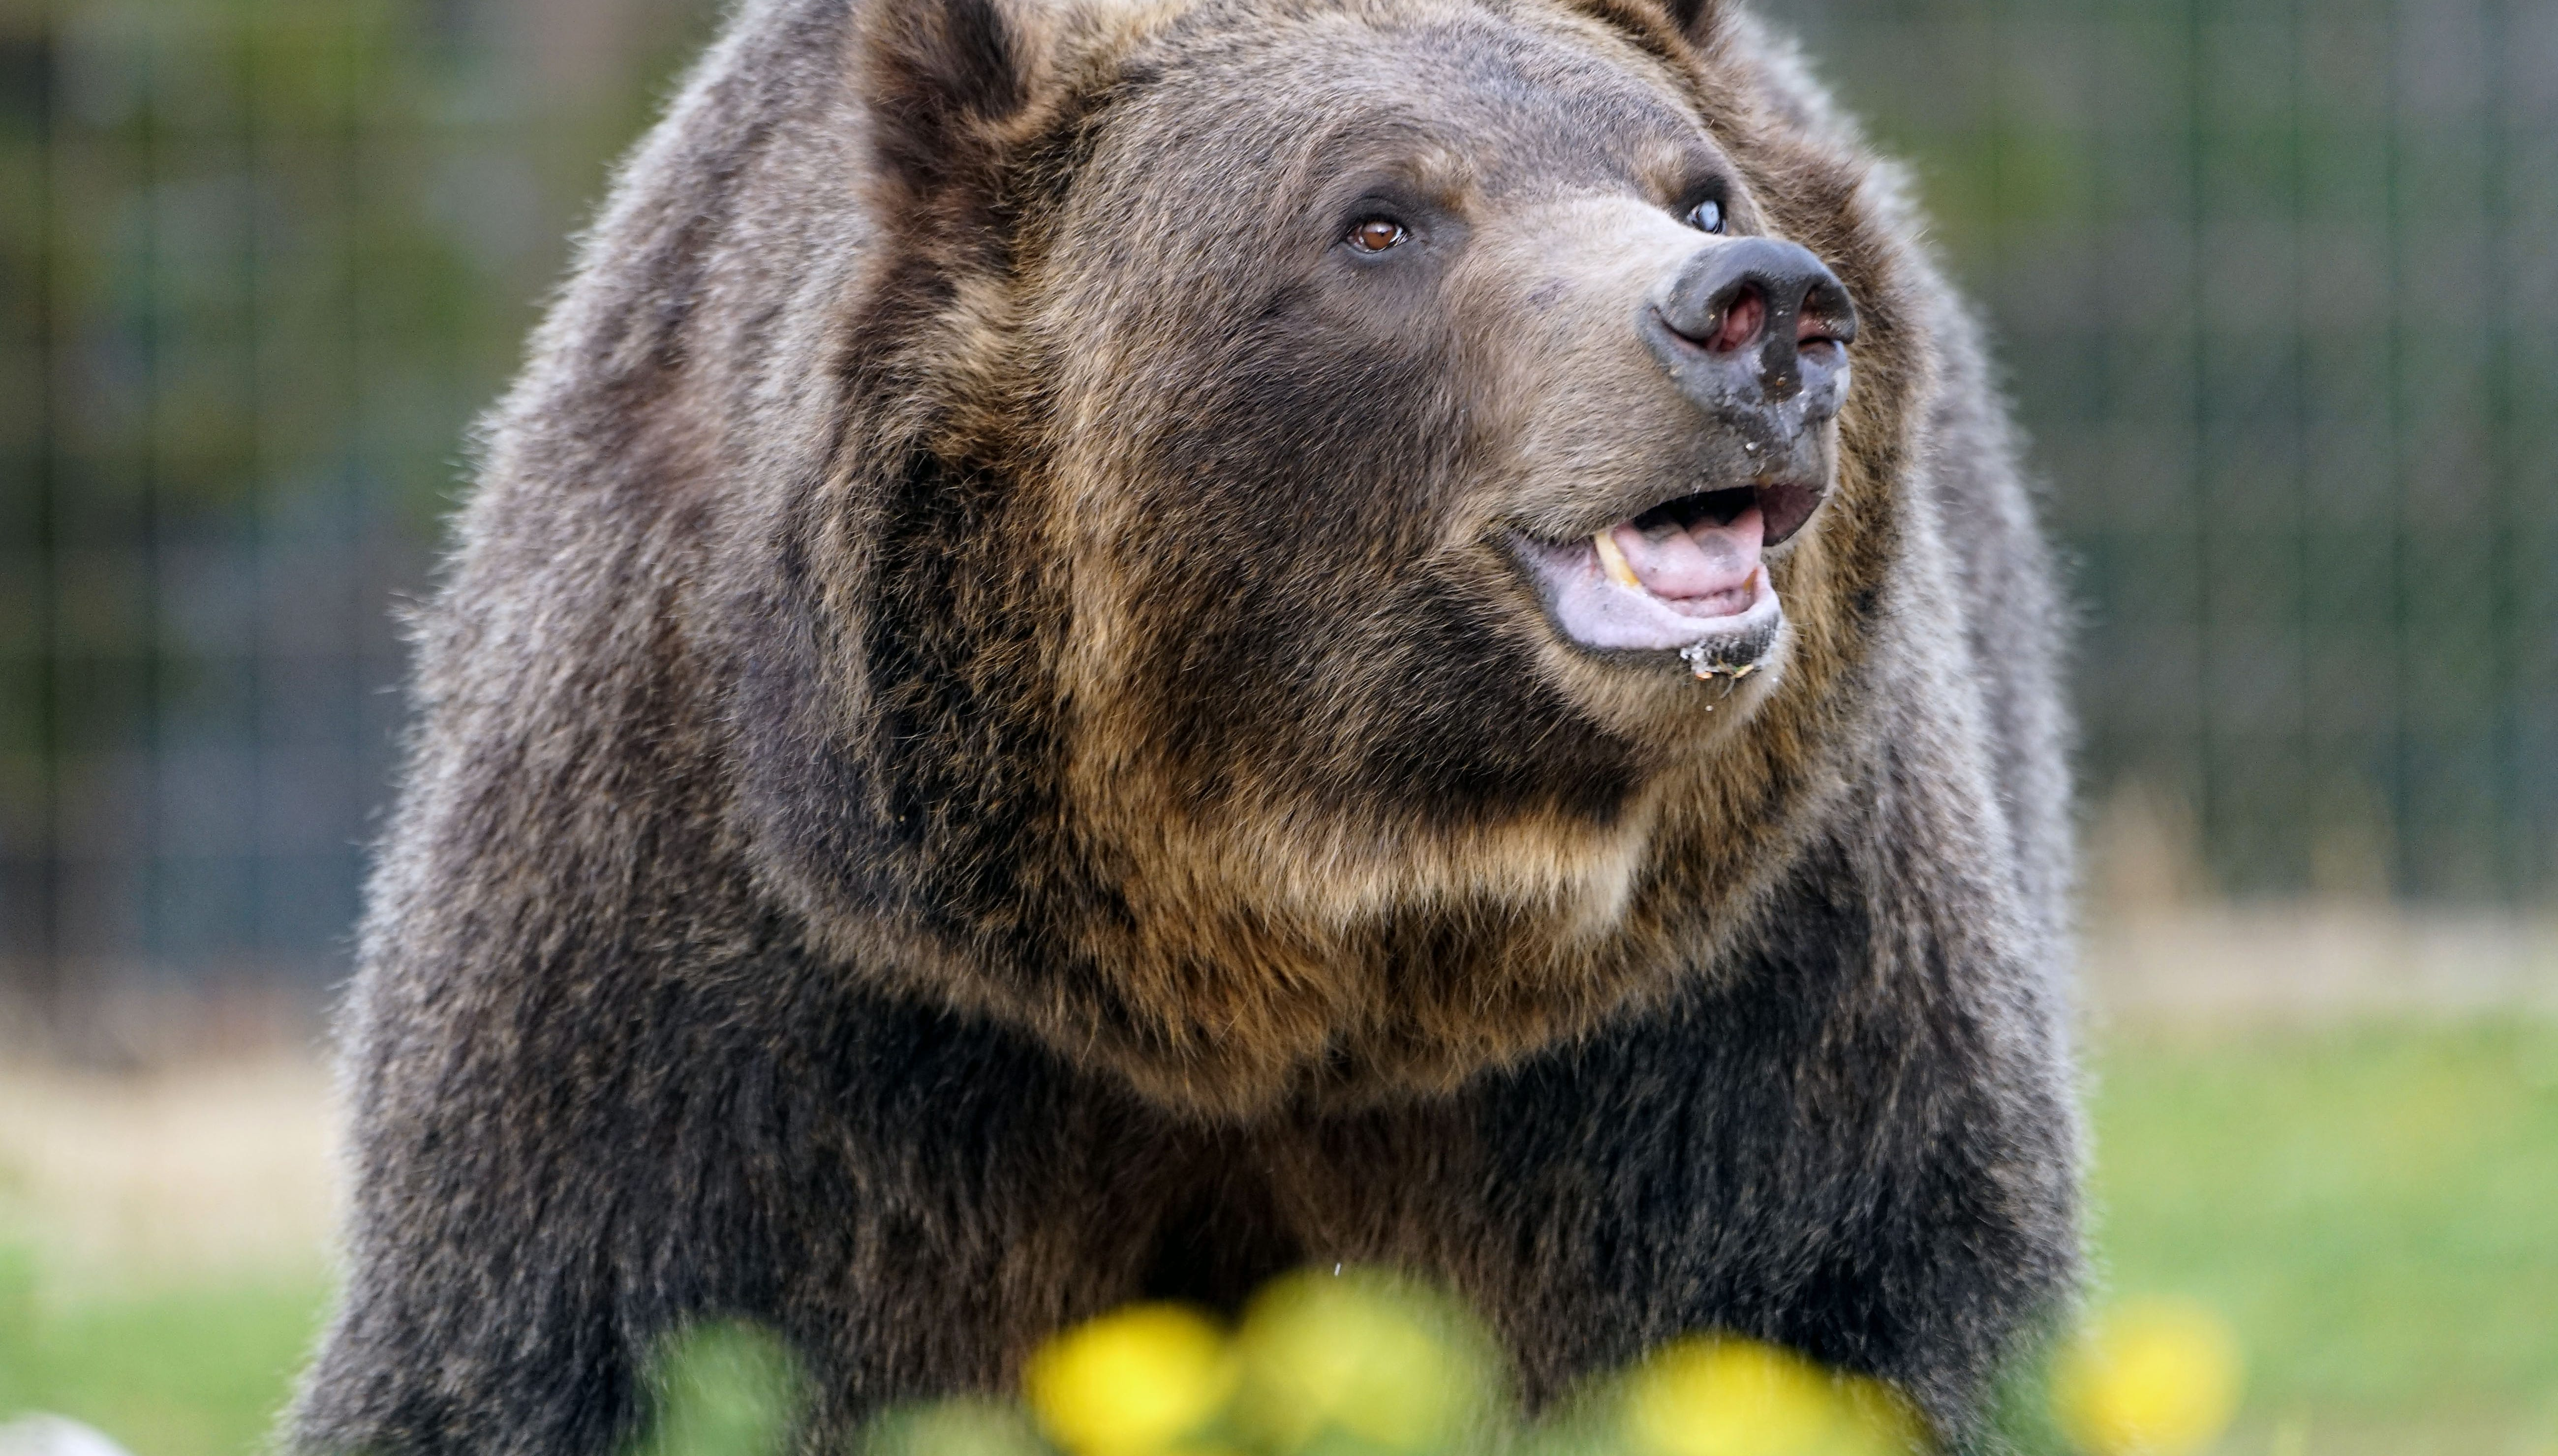 Judge reinstates federal protections for grizzly bears, blocks planned fall hunting season